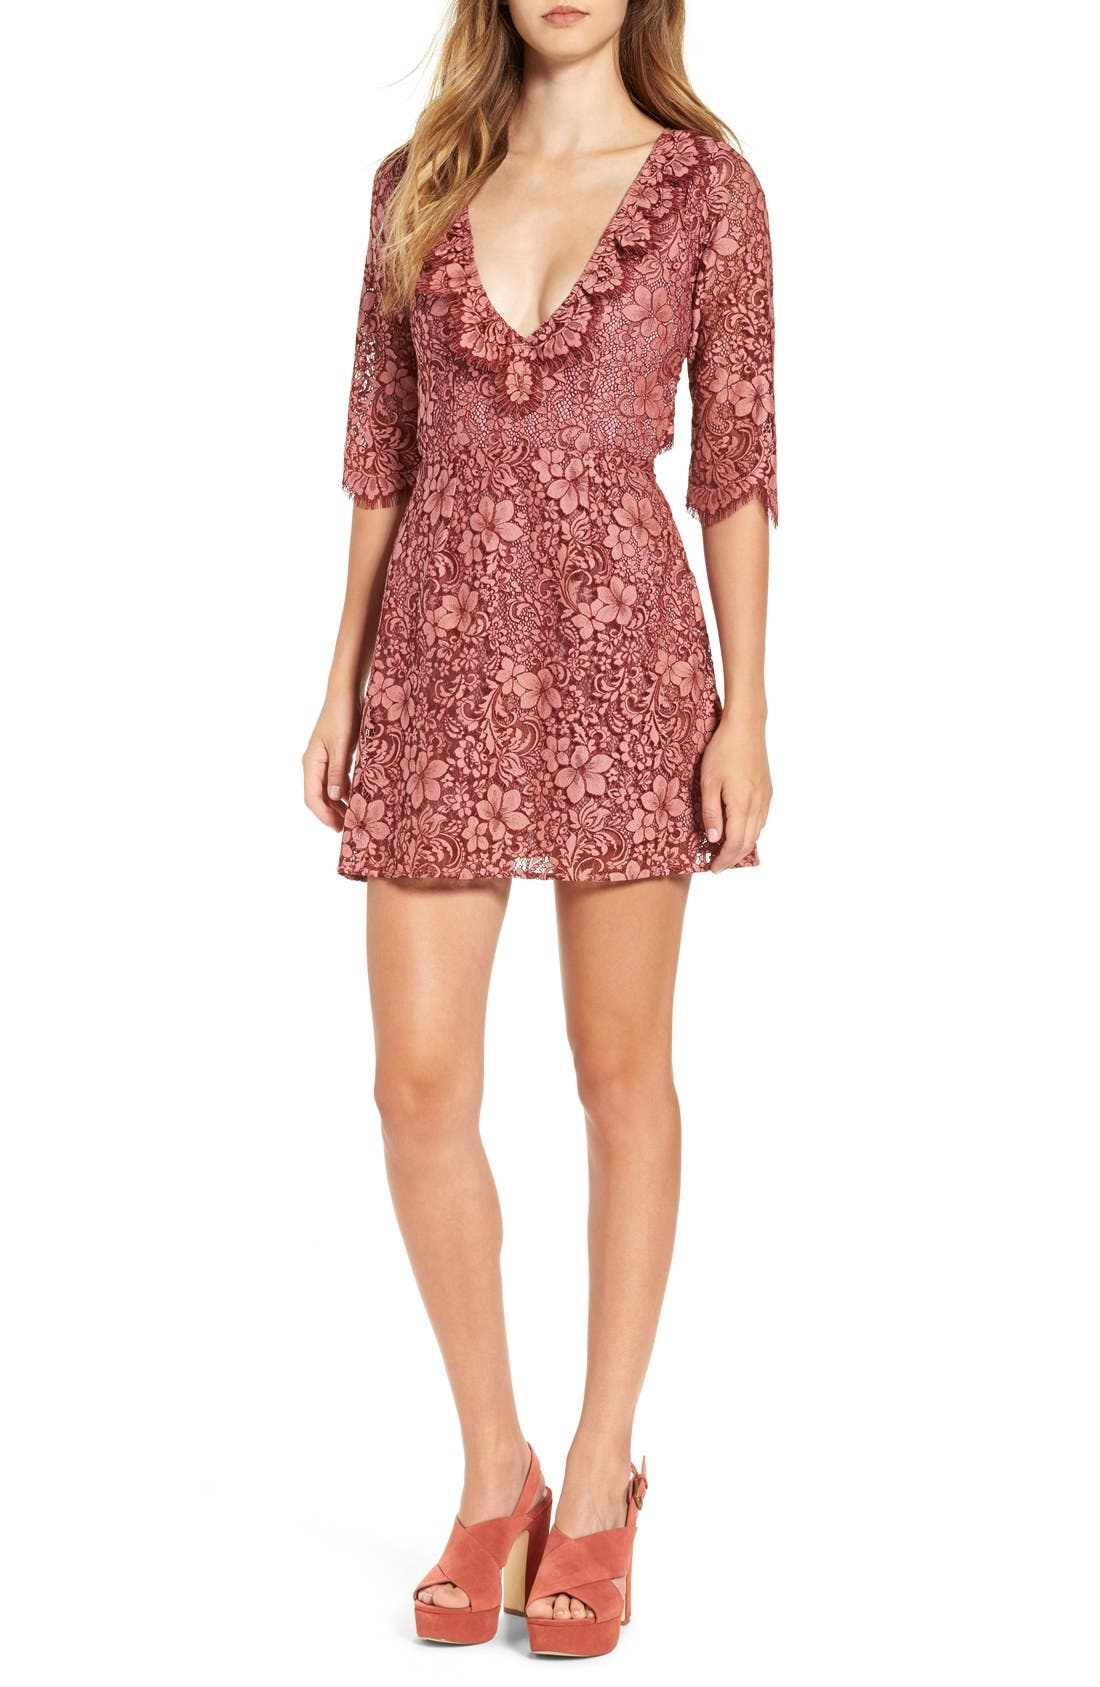 Alternate Image 1 Selected - For Love & Lemons 'Theodora' Minidress